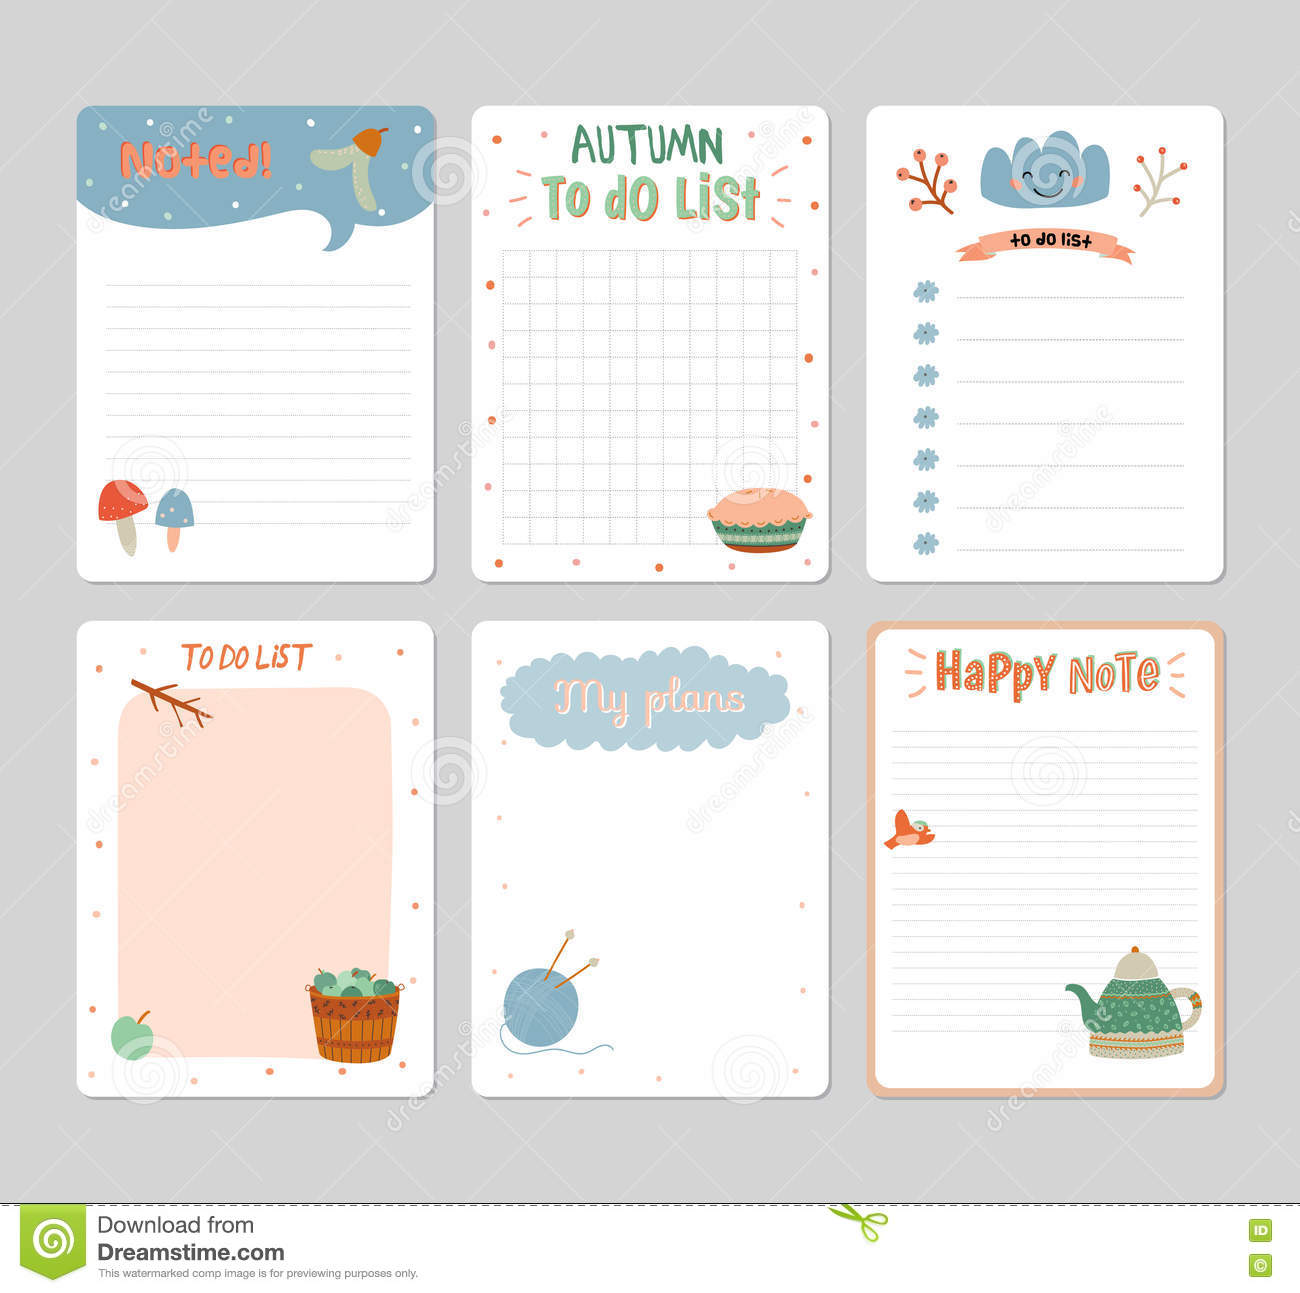 Bien-aimé Cute Daily Calendar And To Do List Template Stock Vector - Image  HX77